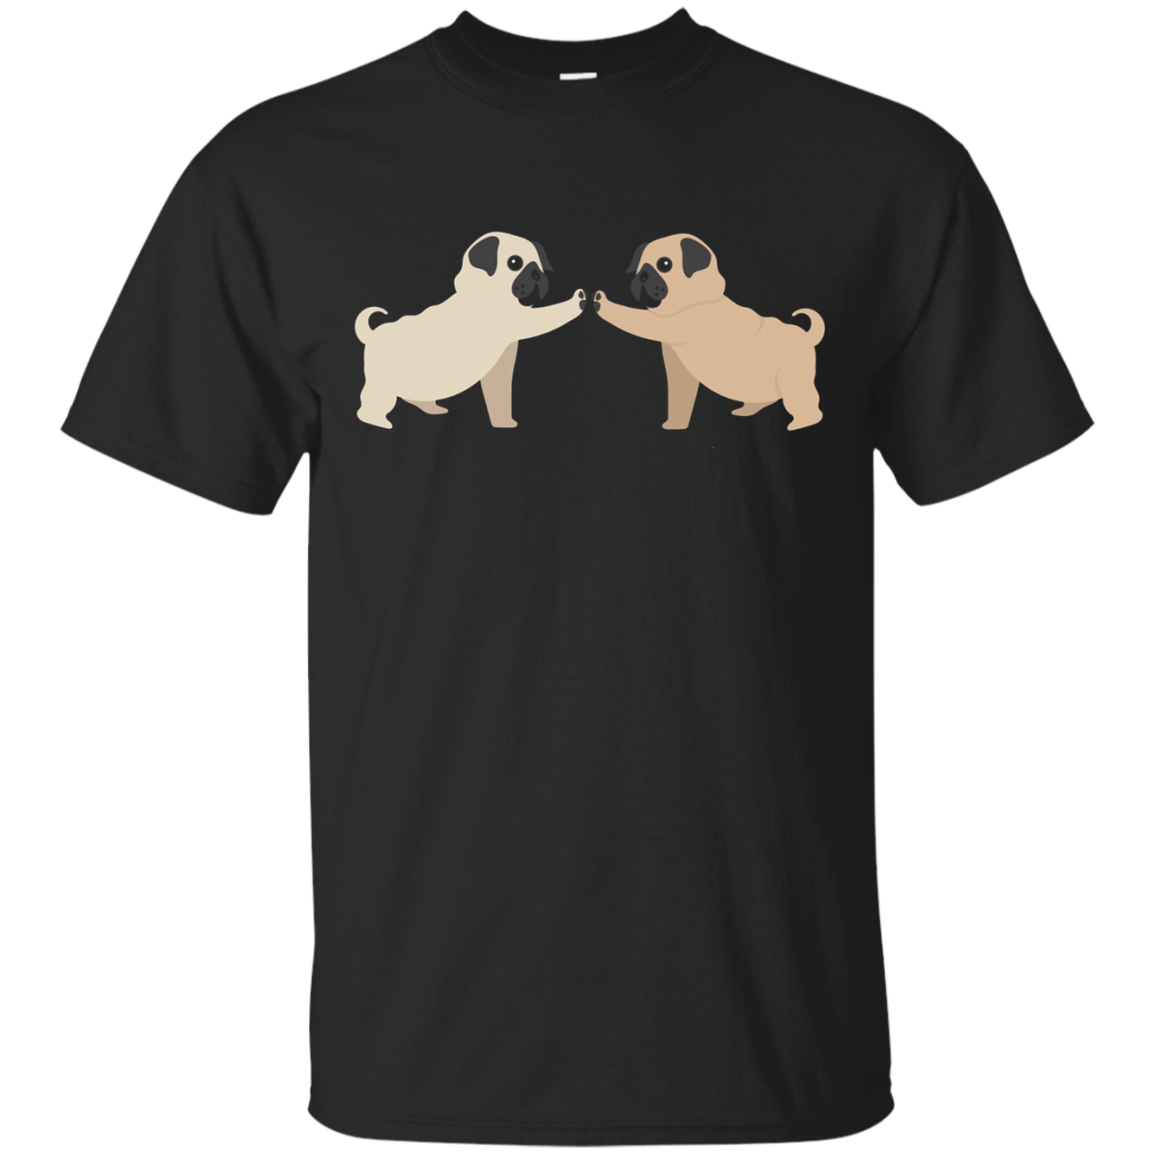 PUG Hi-Five T-shirt - Two PUGS Giving Each Other a Hi-5 Paw!